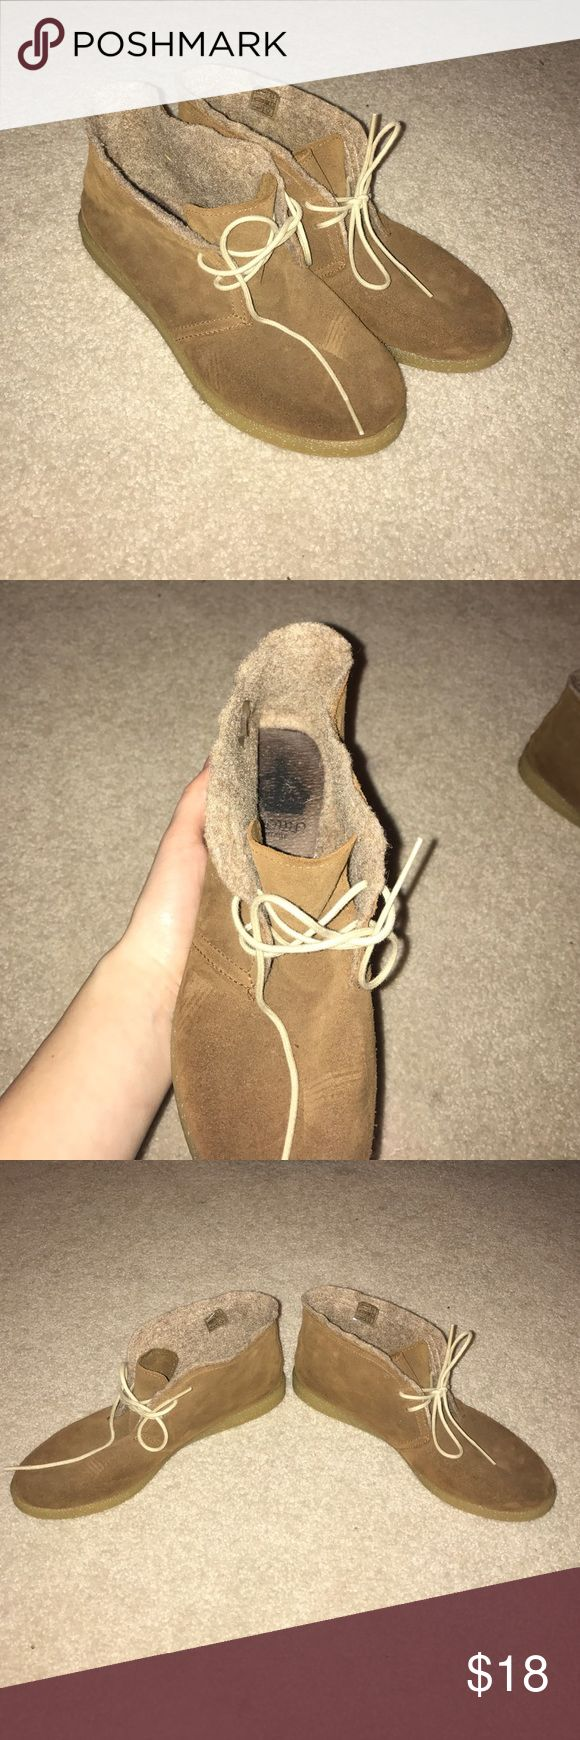 Sneakers Brown felt sneakers/slippers. Not completely sure on the size but I am an 8/8-1/2 and they fit perfectly. Worn a couple times. In awesome condition. Tilly's Shoes Moccasins